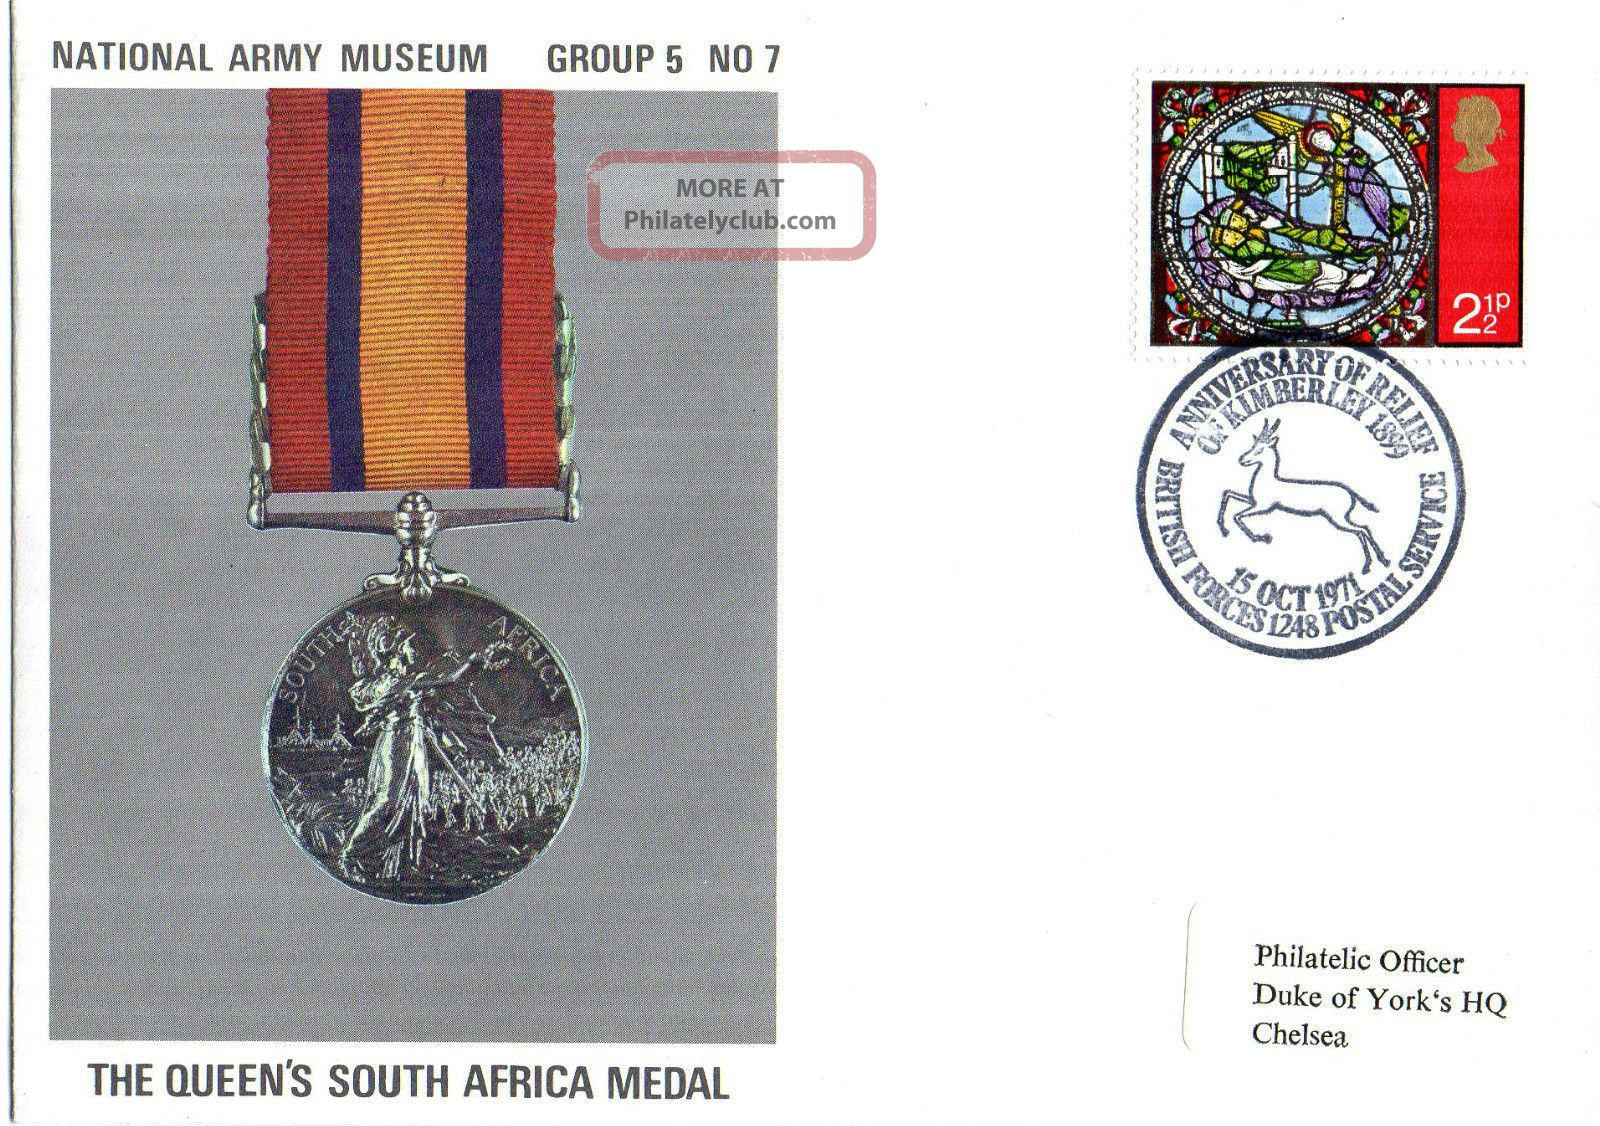 1971 The Queens South Africa Medal 5/7 Army Museum Commemorative Cover Shs Topical Stamps photo